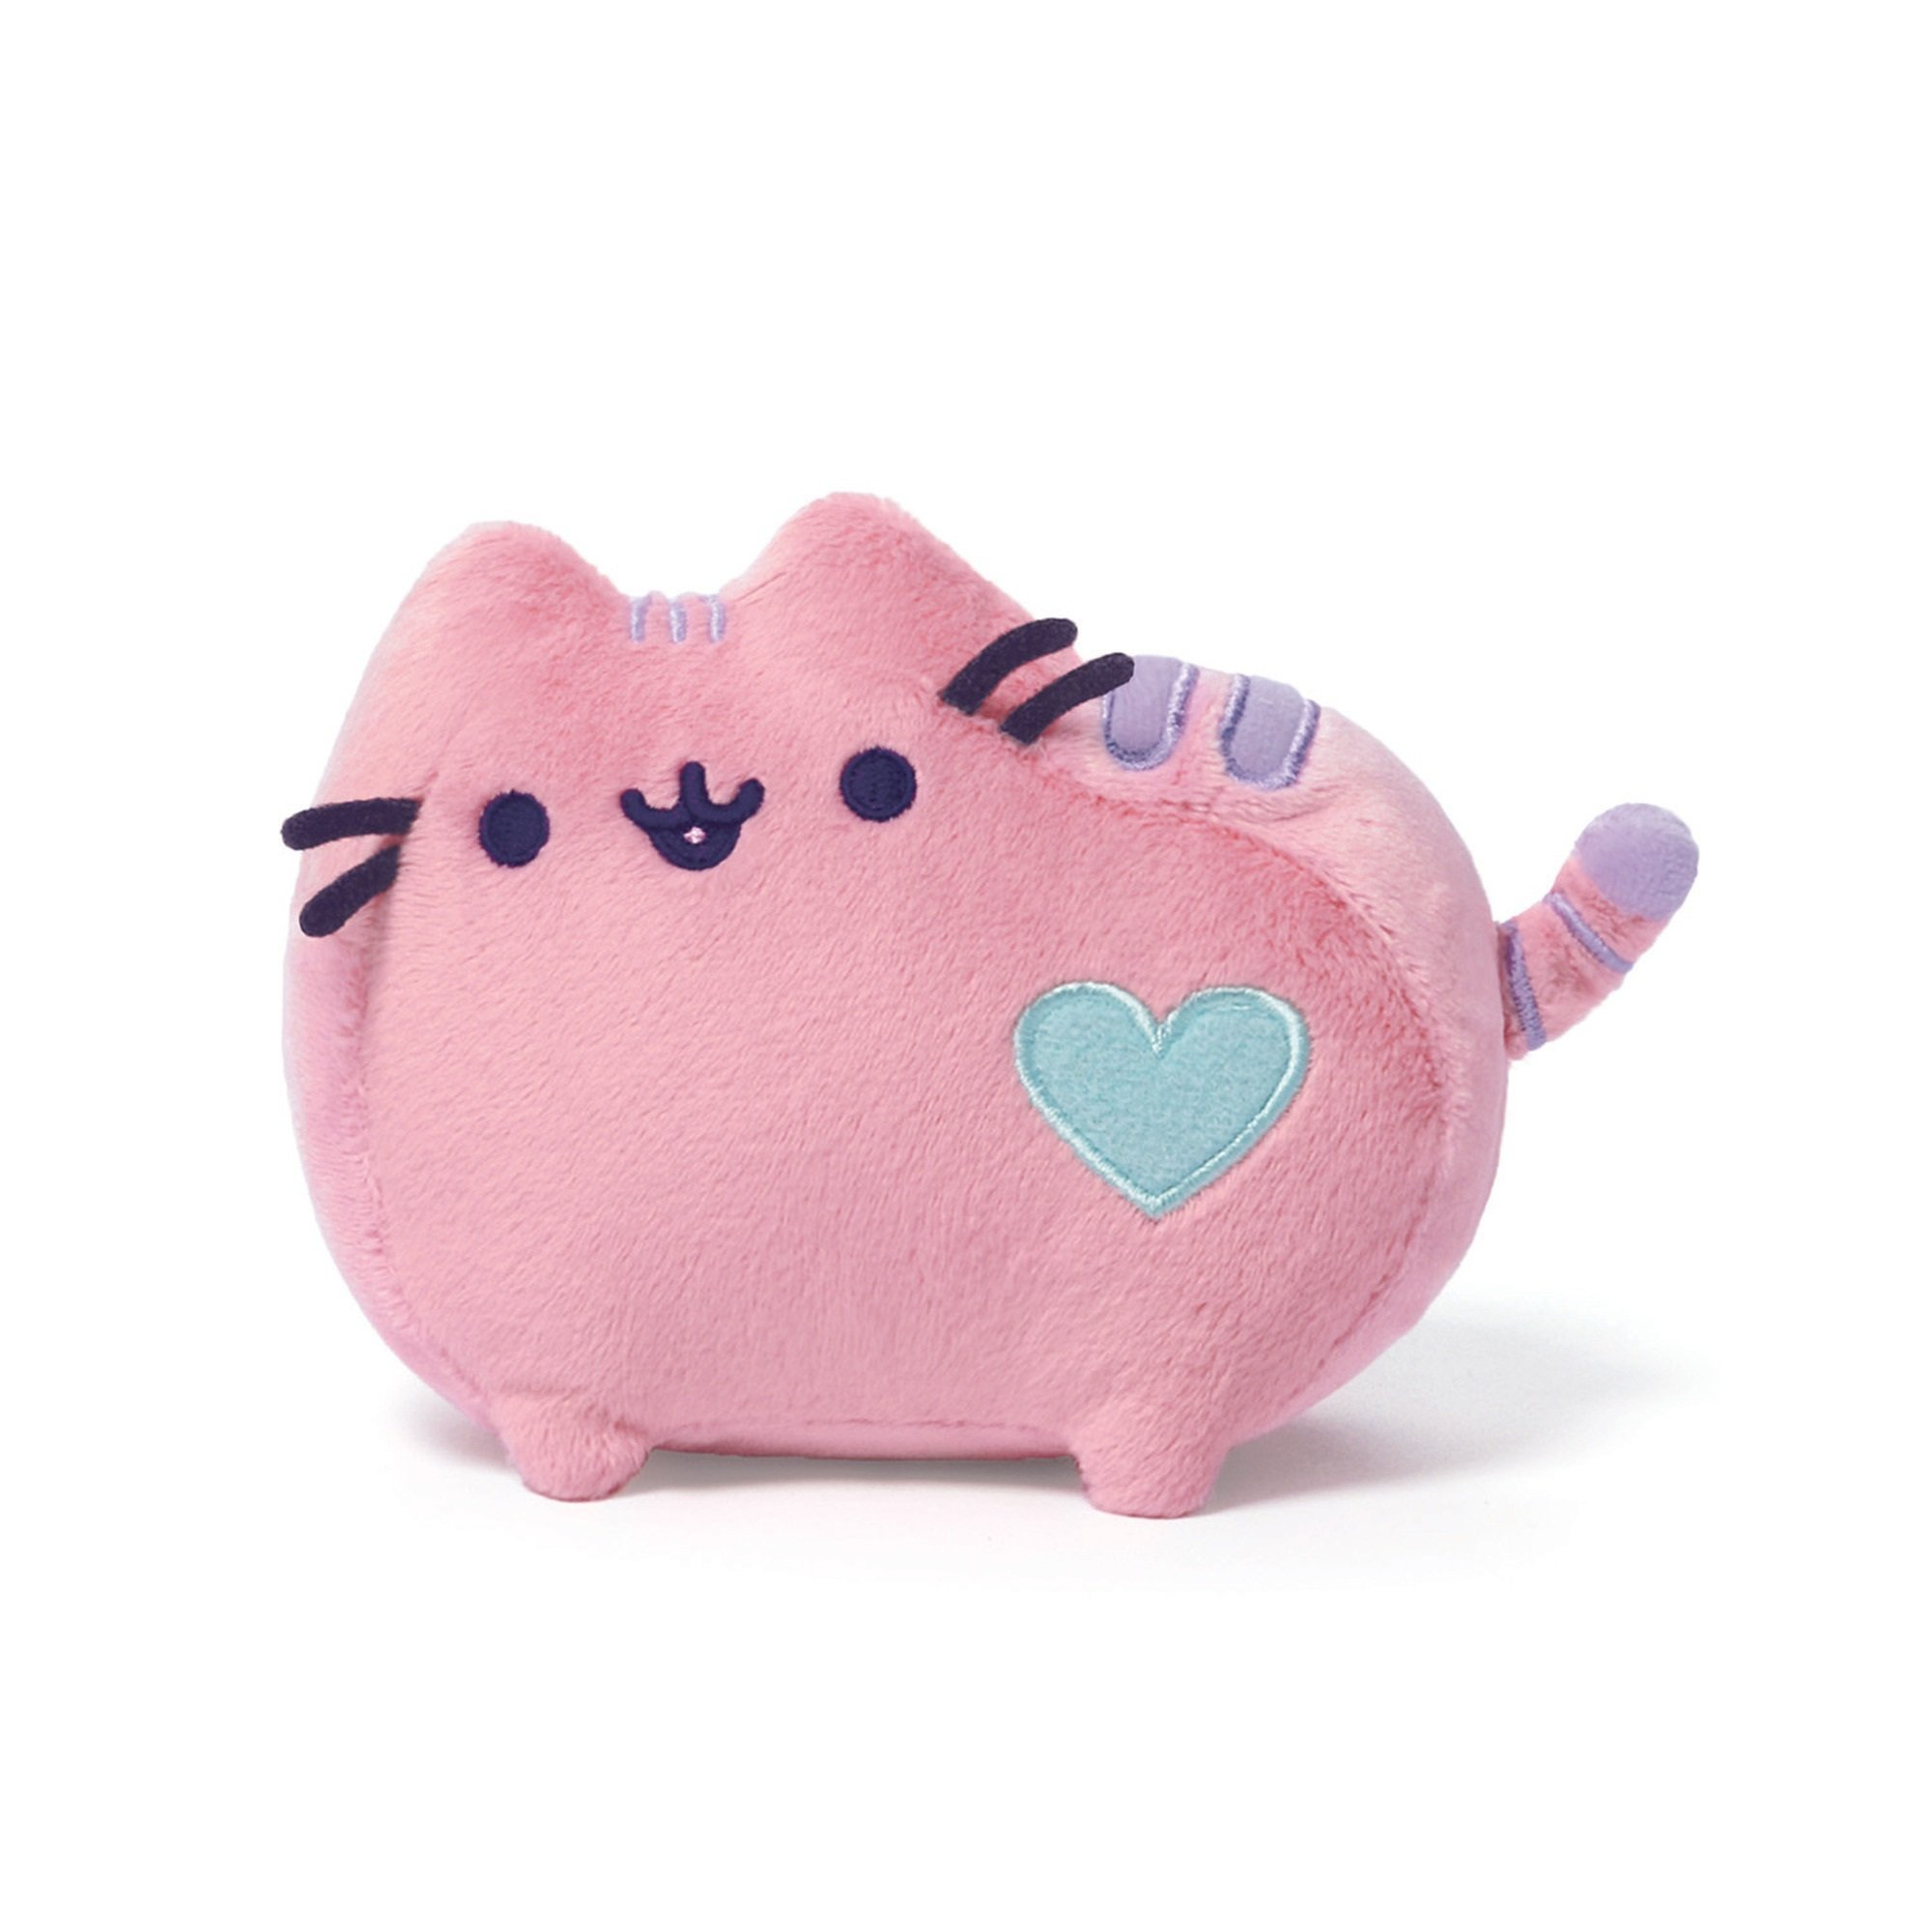 GUND Pusheen Heart Pastel Cat Plush Stuffed Animal, Pink, 6'' by GUND